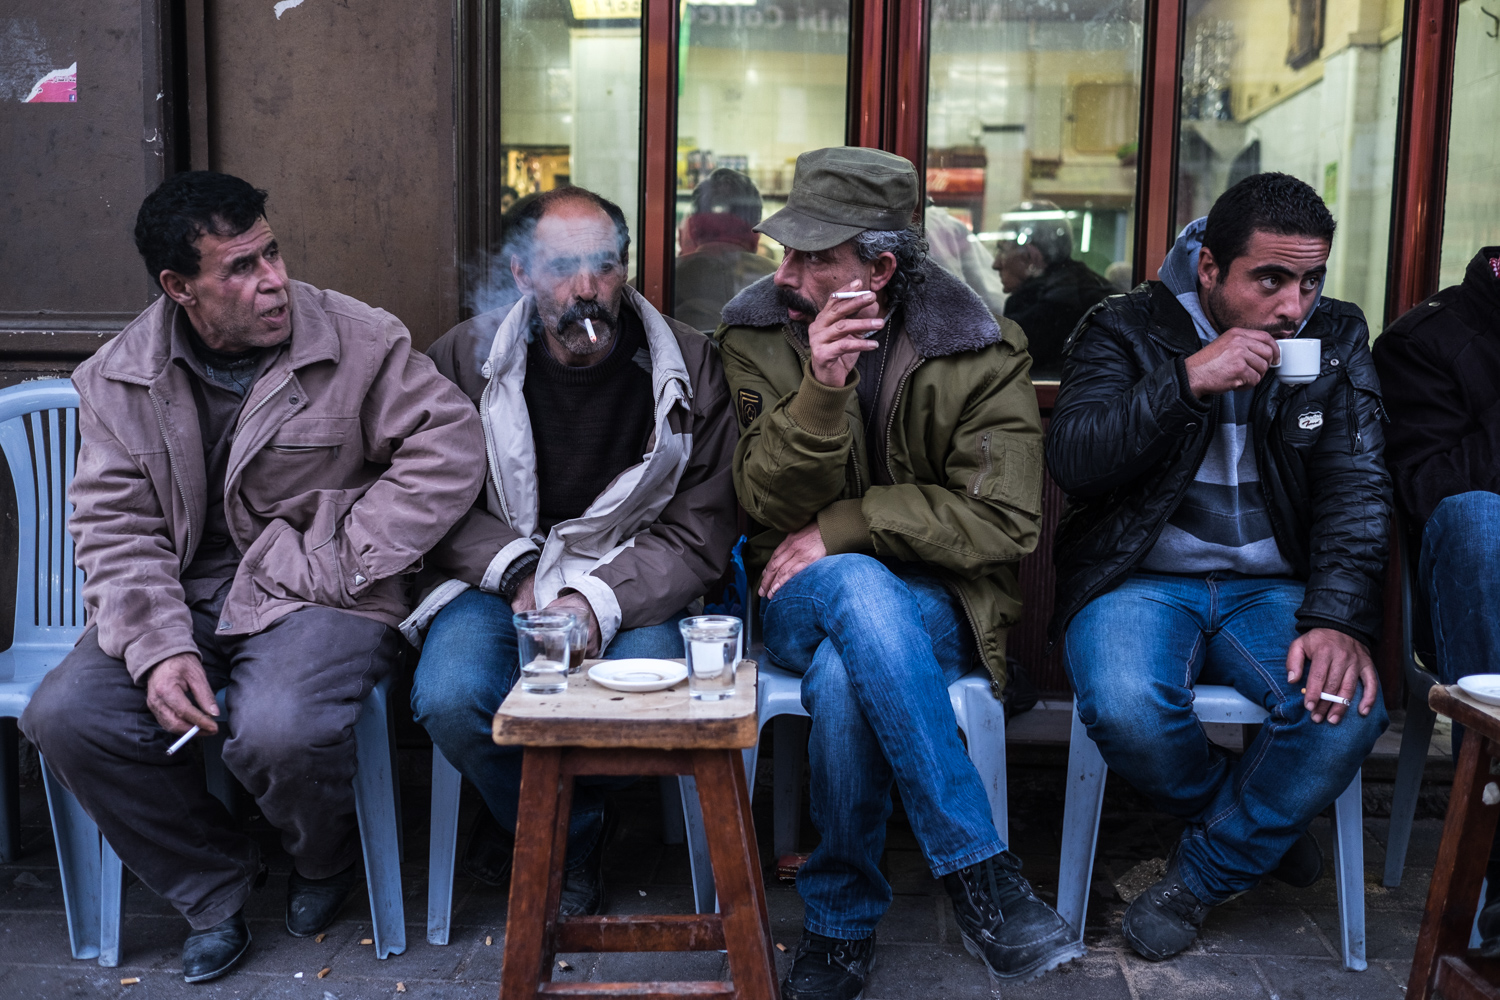 Men sitting in front of a café in Ramallah in the Westbank, smoking and having tea